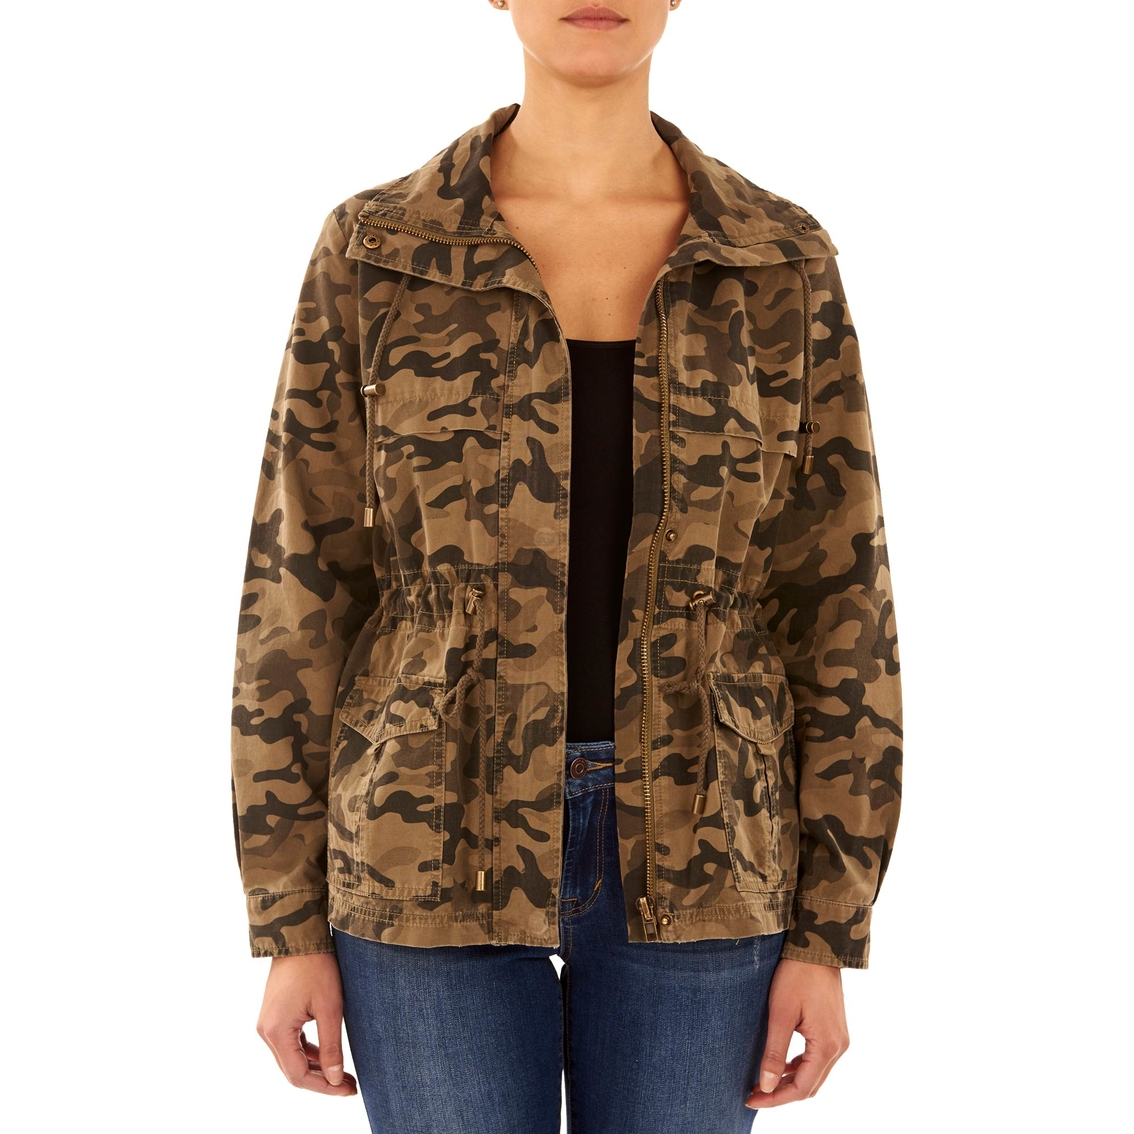 63757e4262c00 Kensie Jeans Printed Field Jacket | Jackets | Apparel | Shop The ...